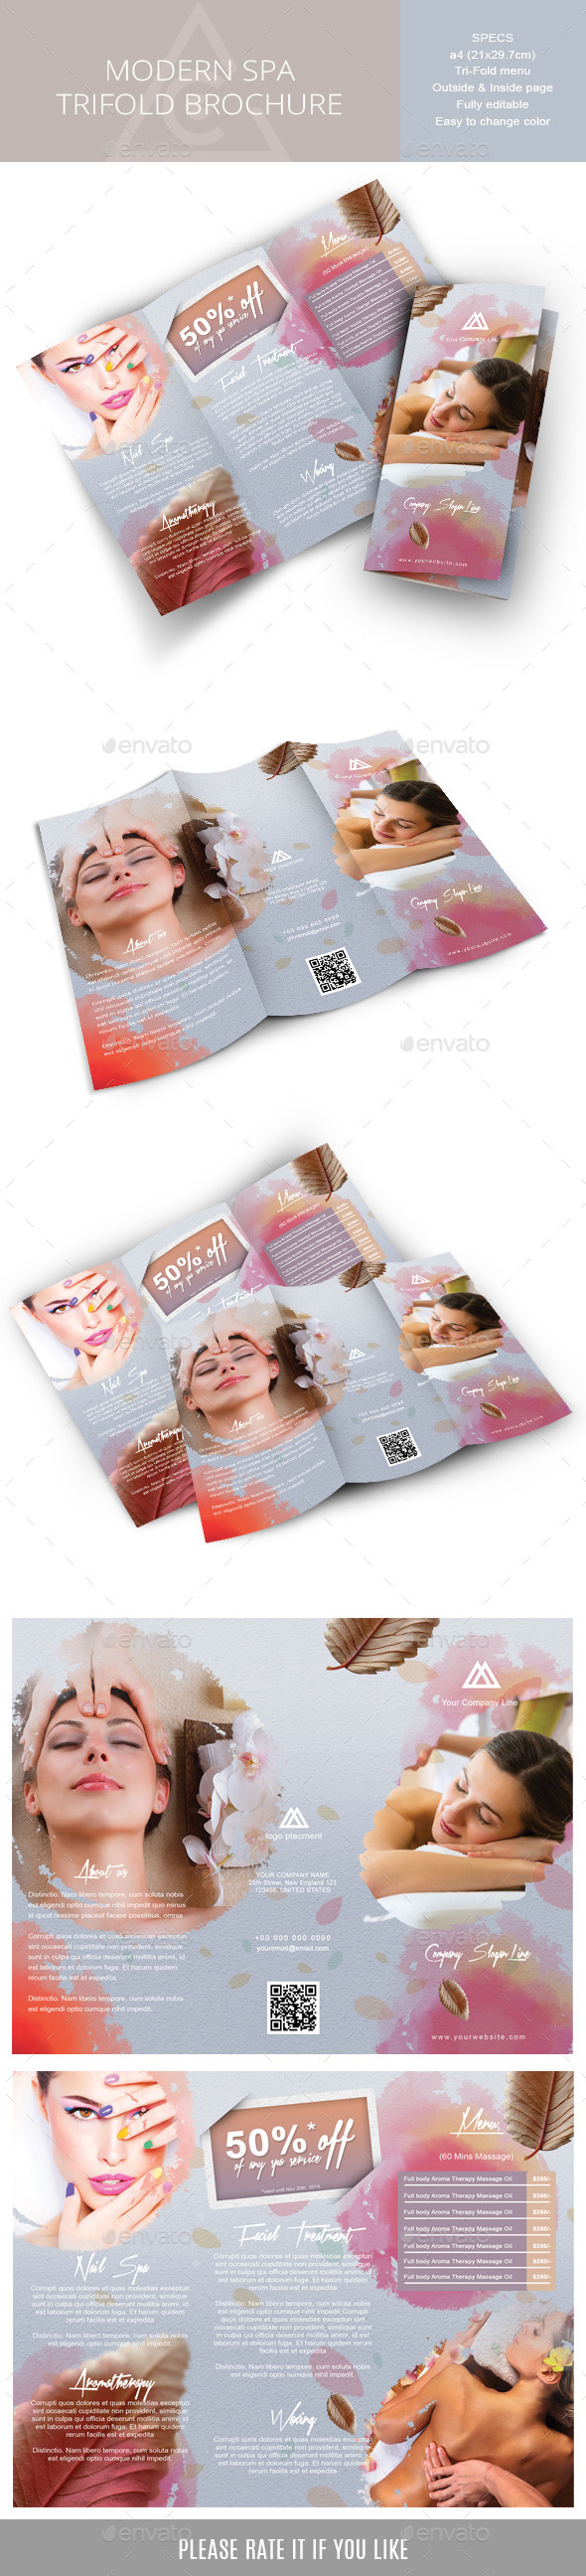 Tri-fold brochure for Spa or Body-care Business - Corporate Brochures